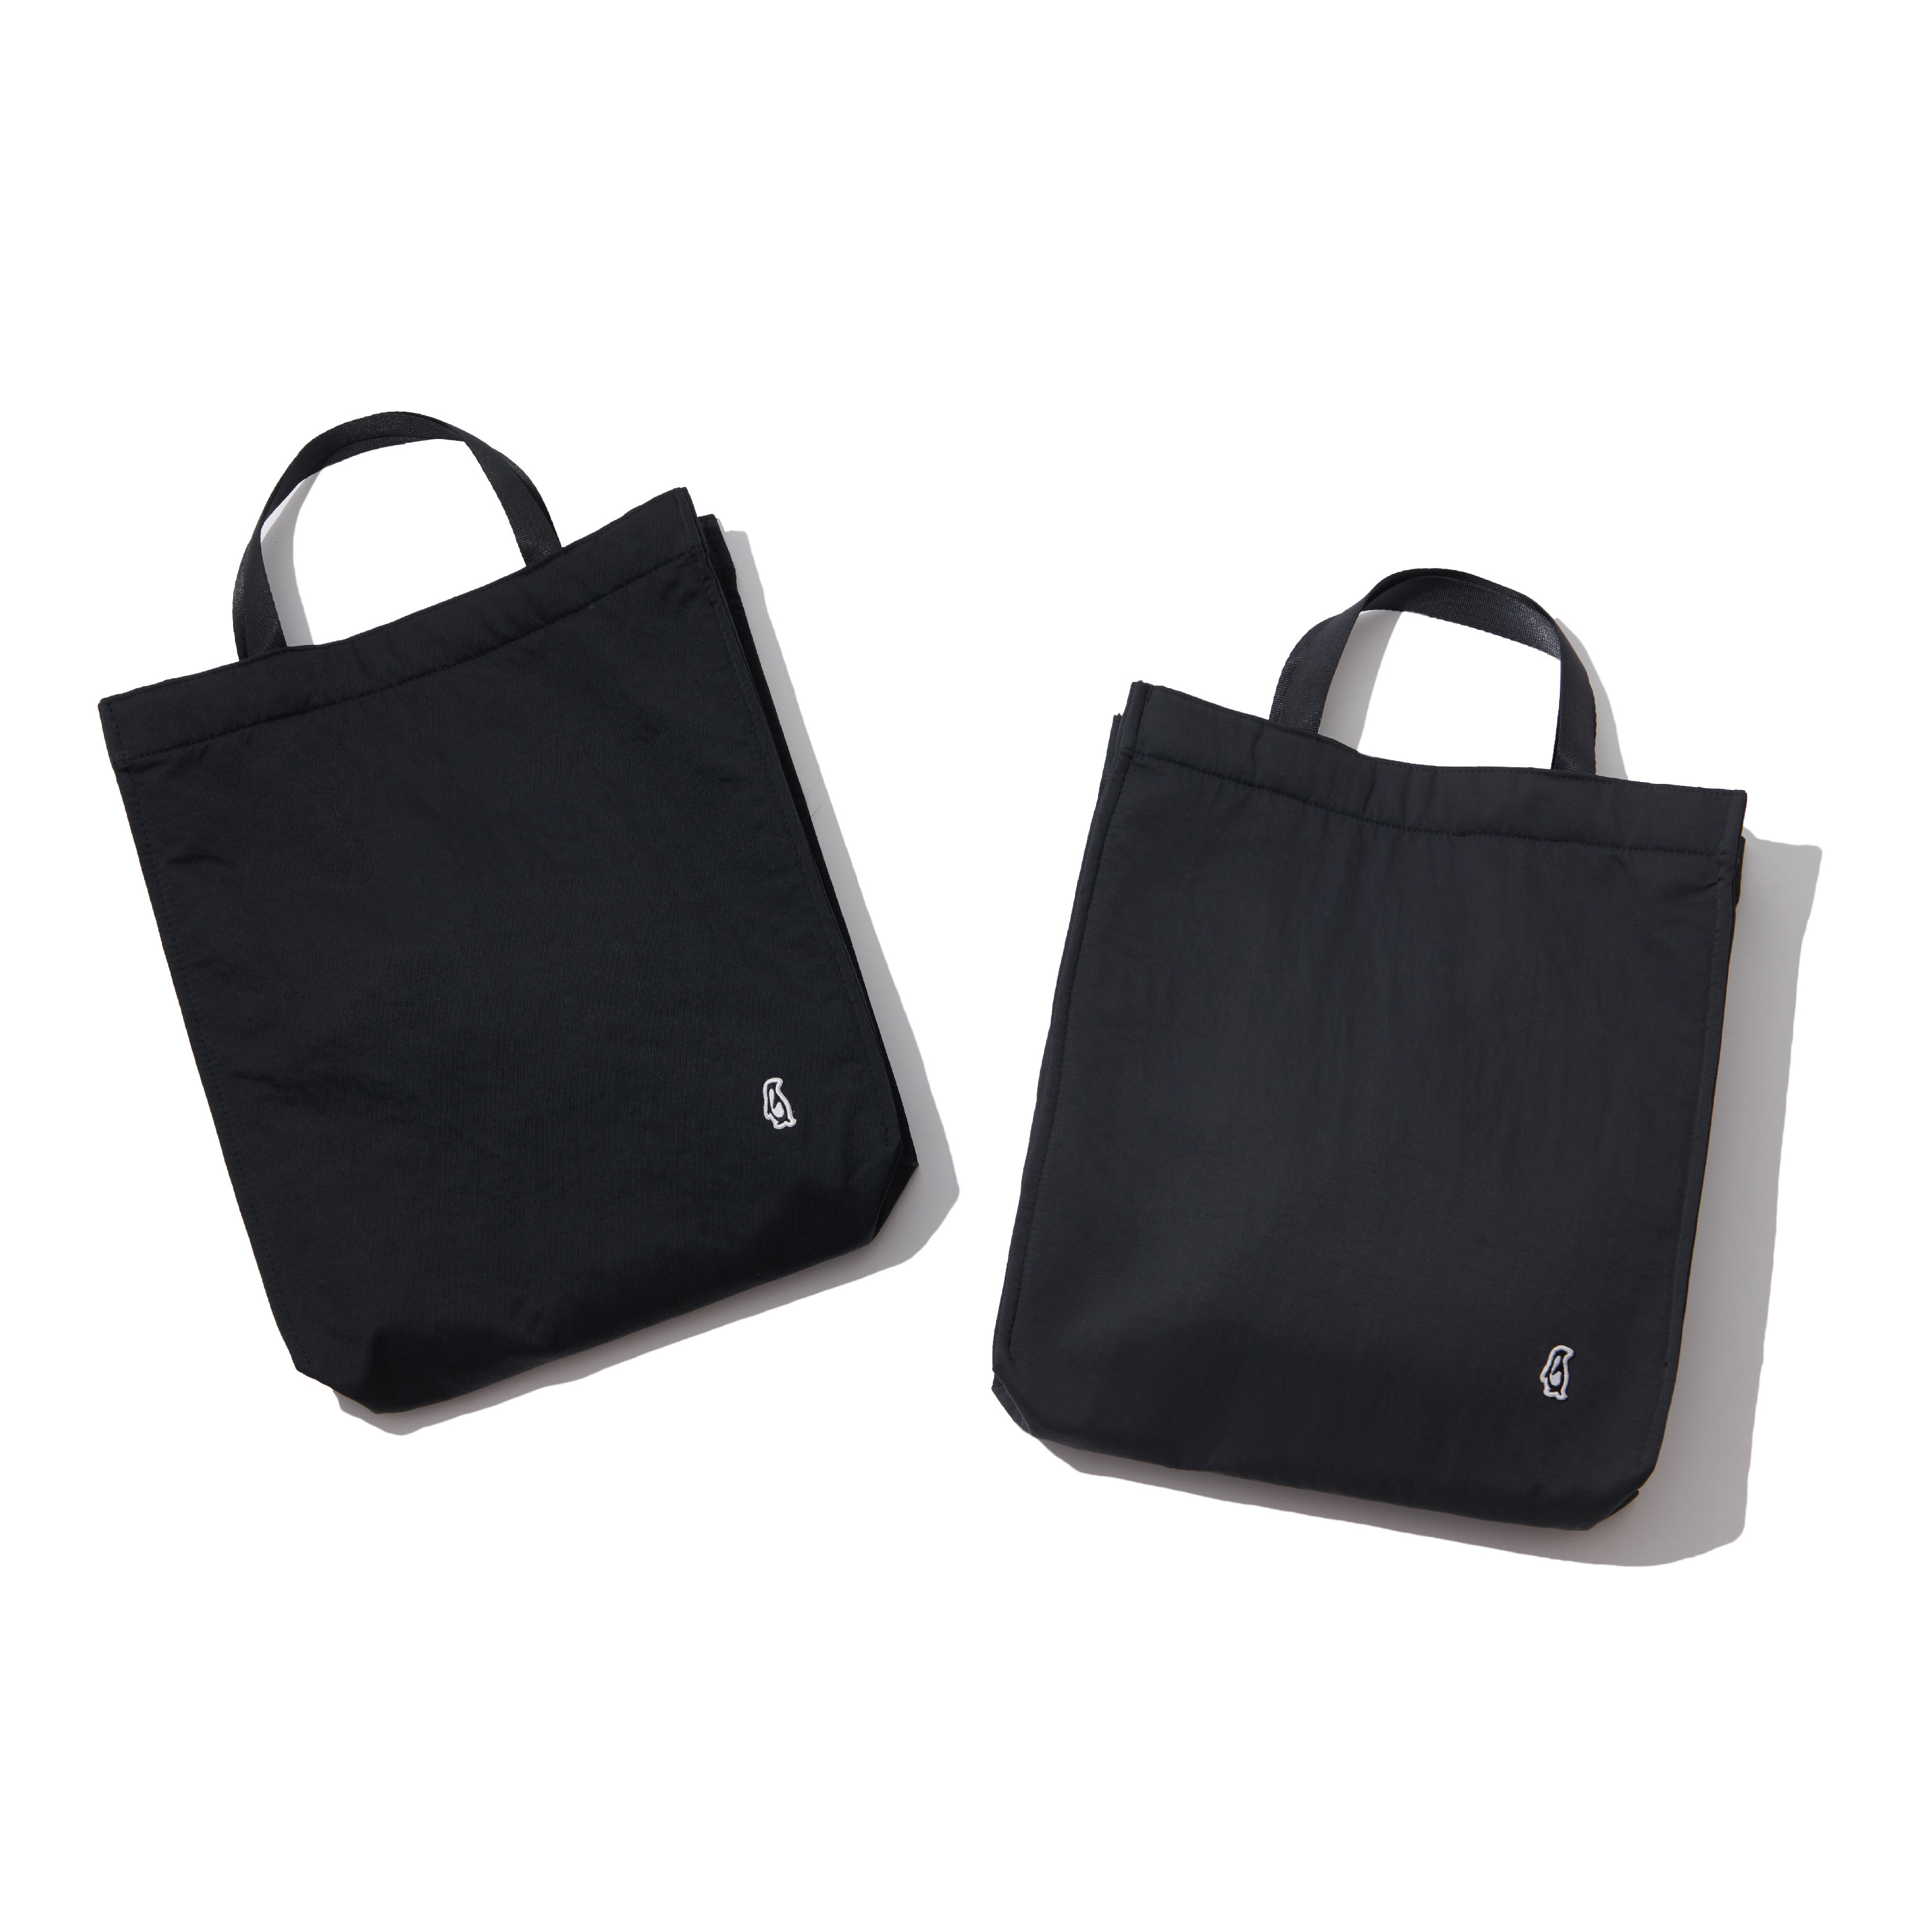 Paul Nylon Tote Bag 2 Color